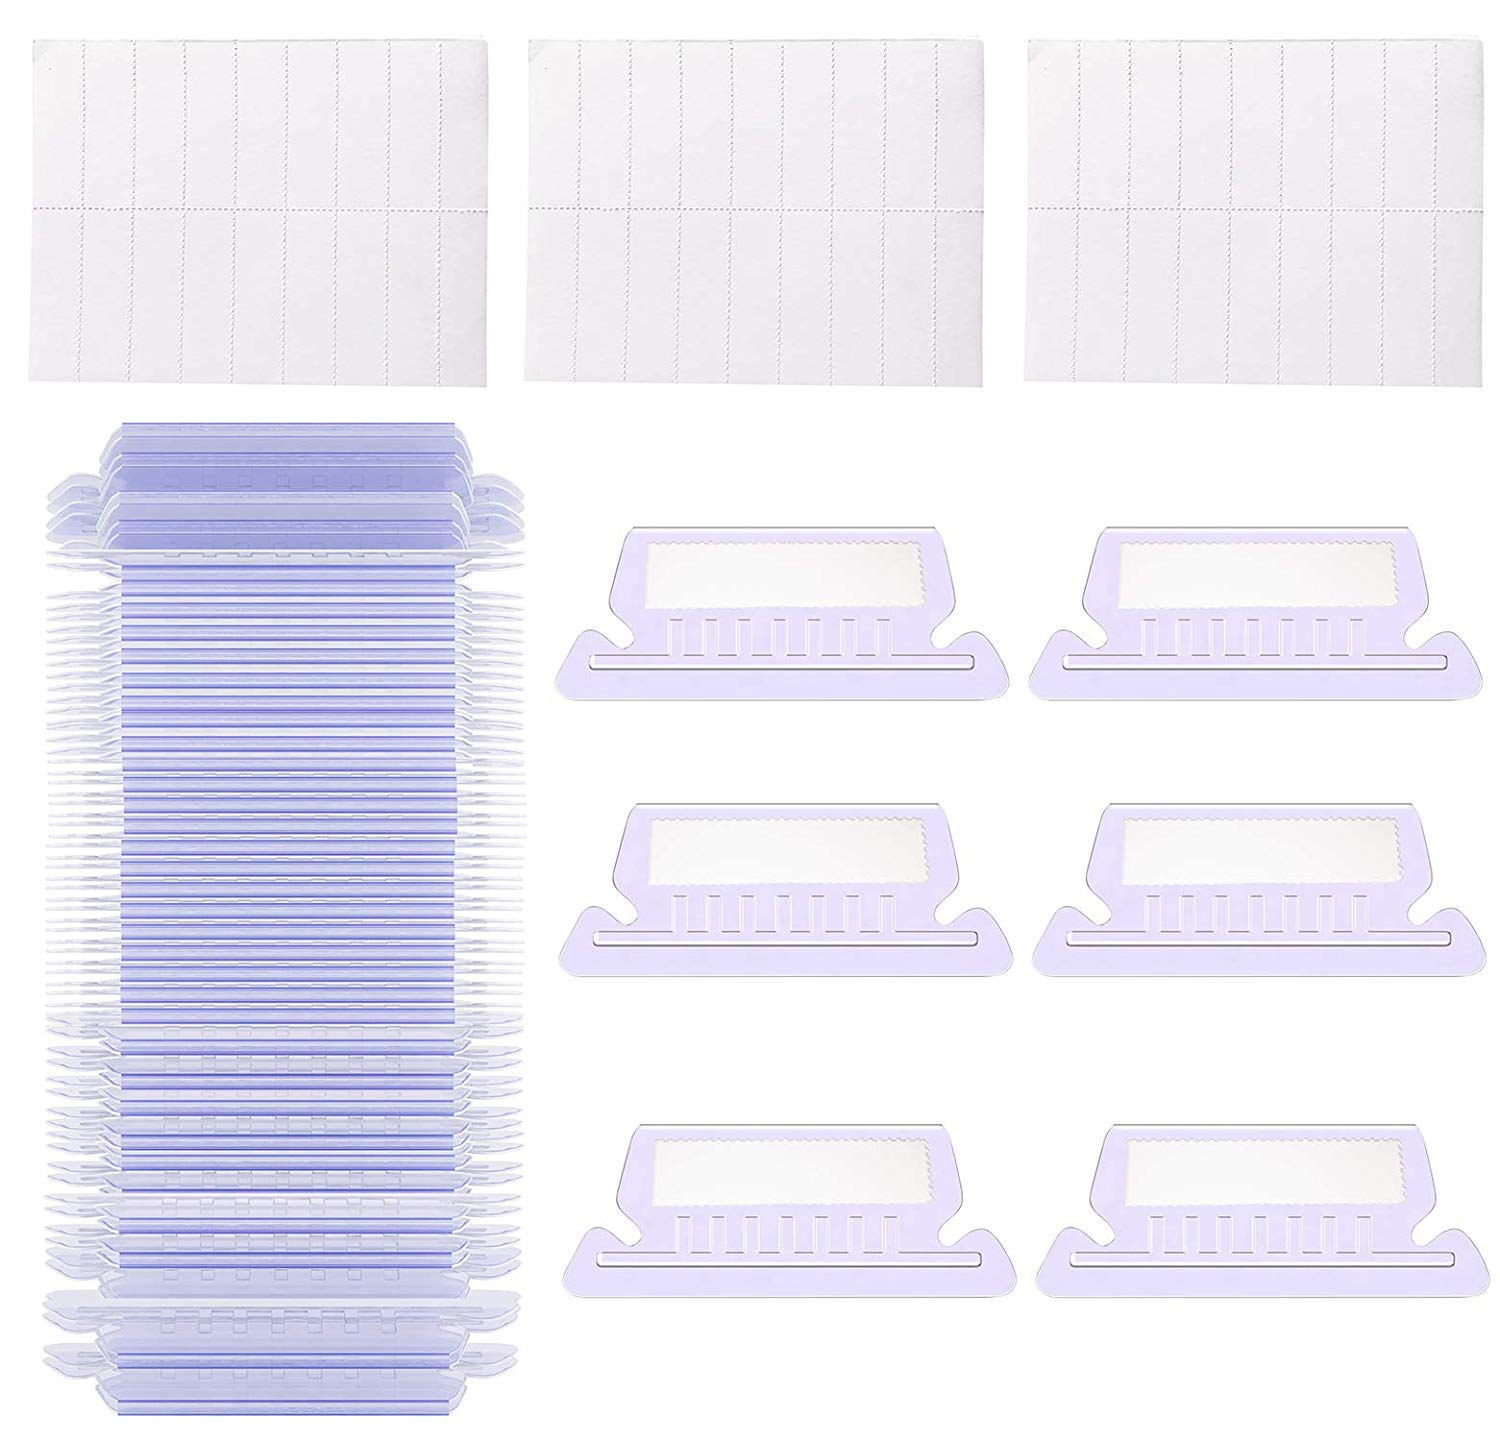 "150 Sets Plastic Hanging Folder Tabs and Inserts, 2"" File Tabs and Hanging File Inserts, Easy to Read and Identify Files"